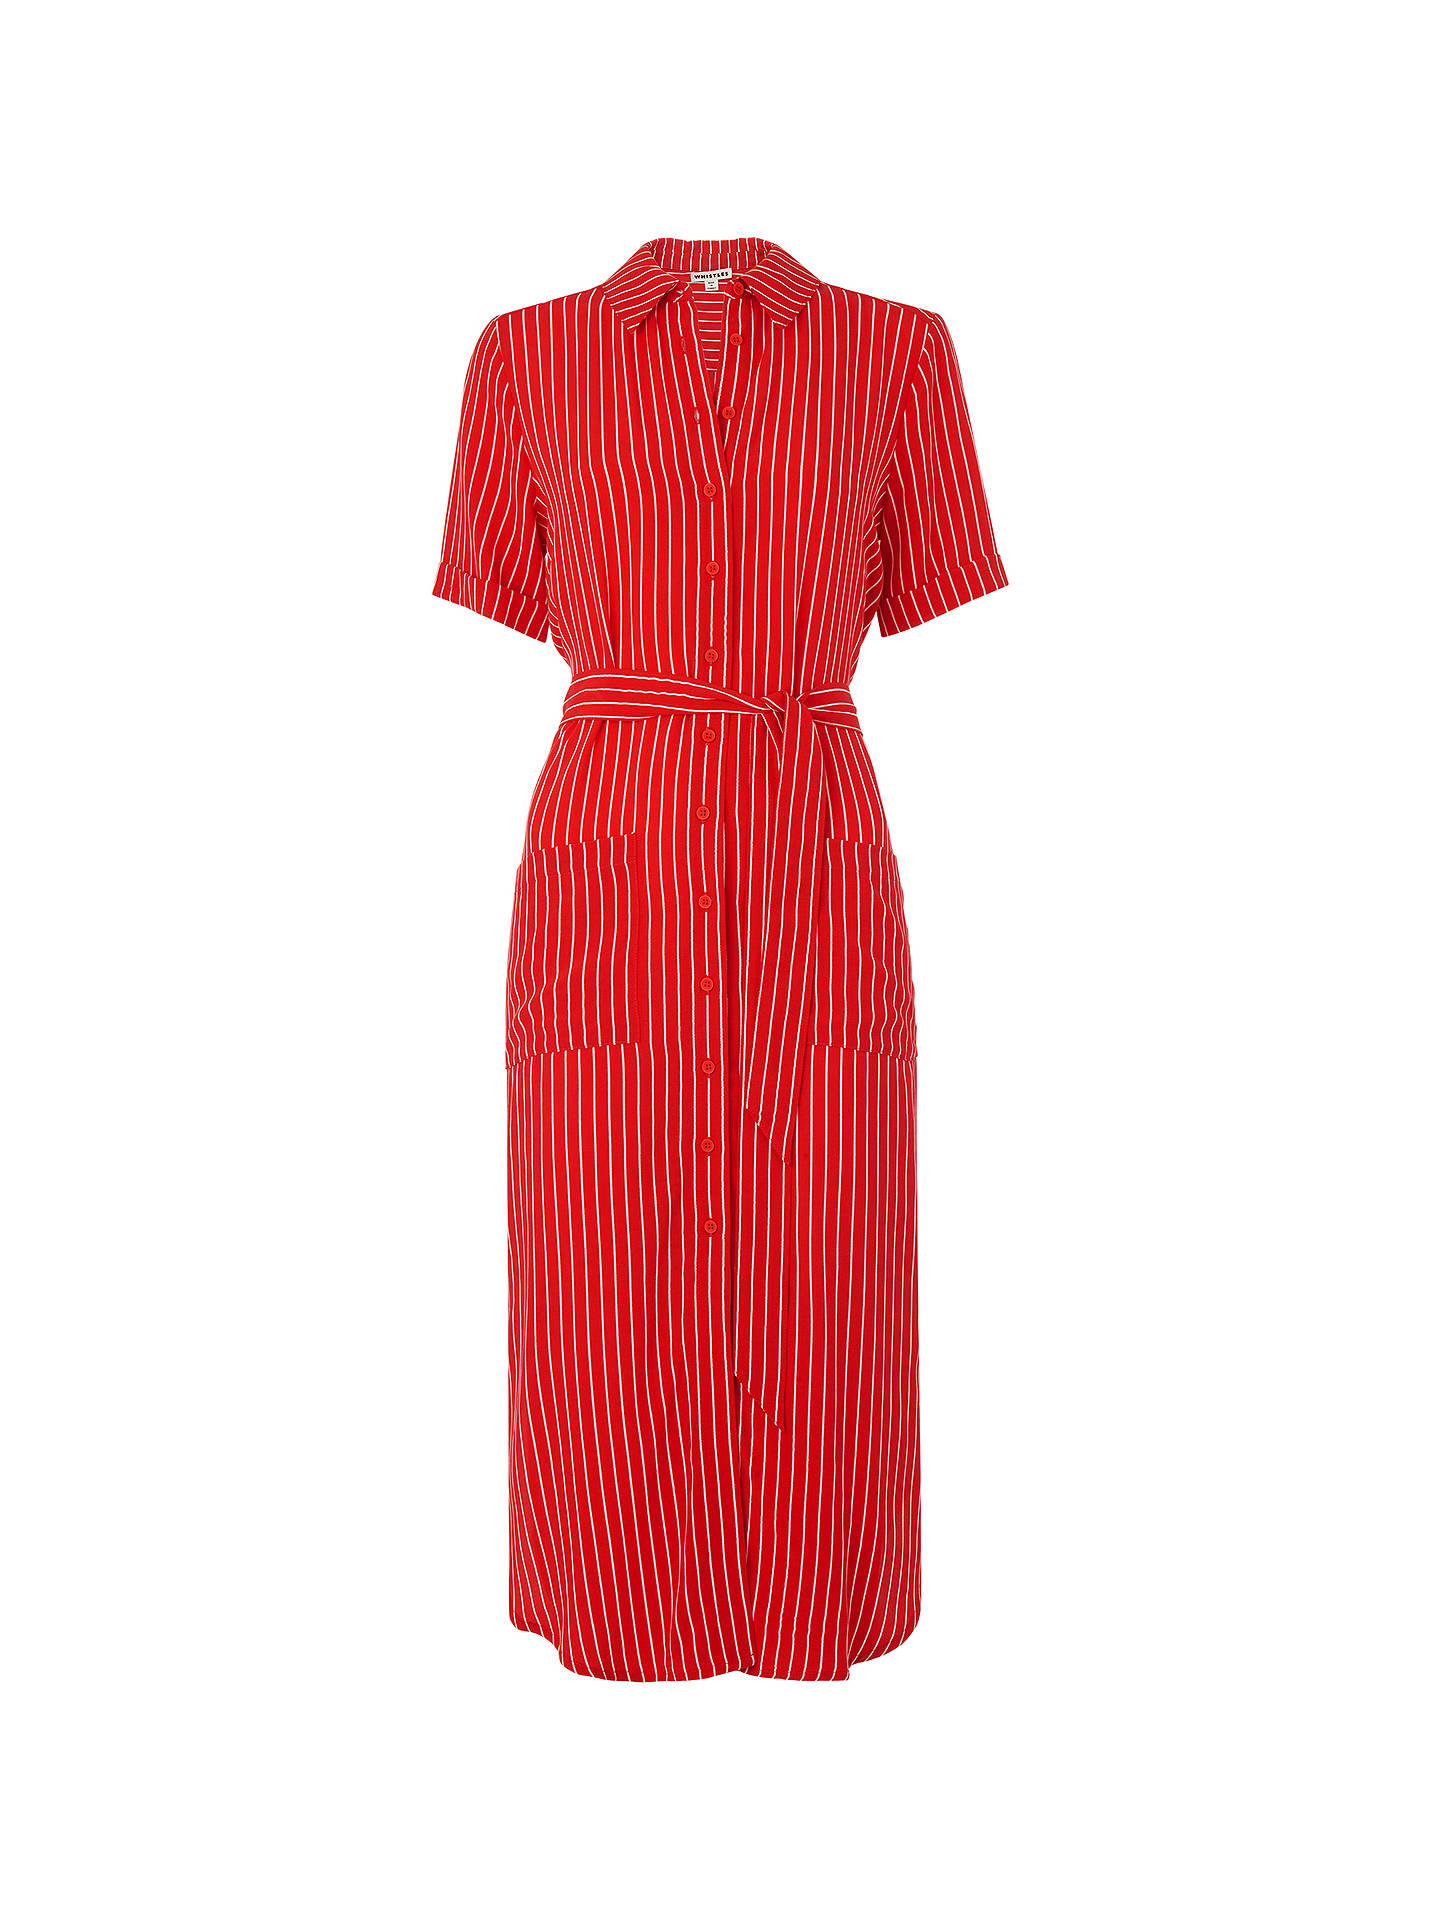 Buy Whistles Montana Shirt Dress, Red/Multi, 6 Online at johnlewis.com